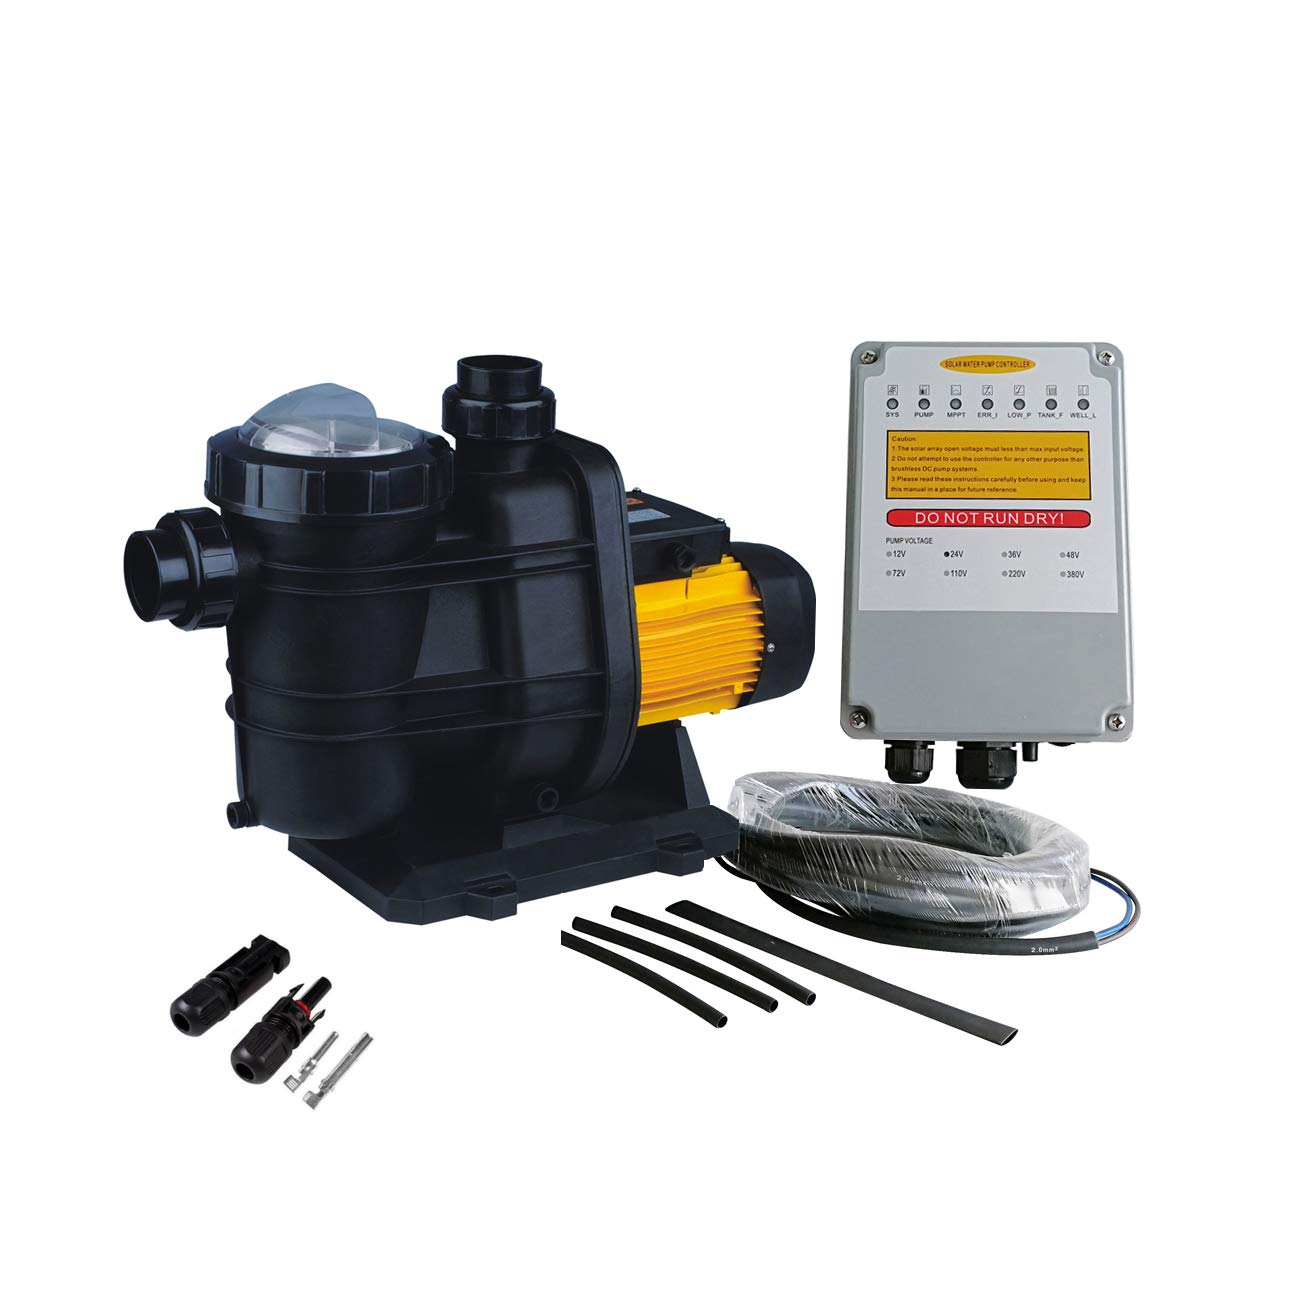 PWS Solar Powered Swimming Pool Pump, 72VDC, 1.6HP, 62ft, 136GPM, Solar Water Pump with MPPT Controller, Suitable for Salt Water, JP31-19/1200